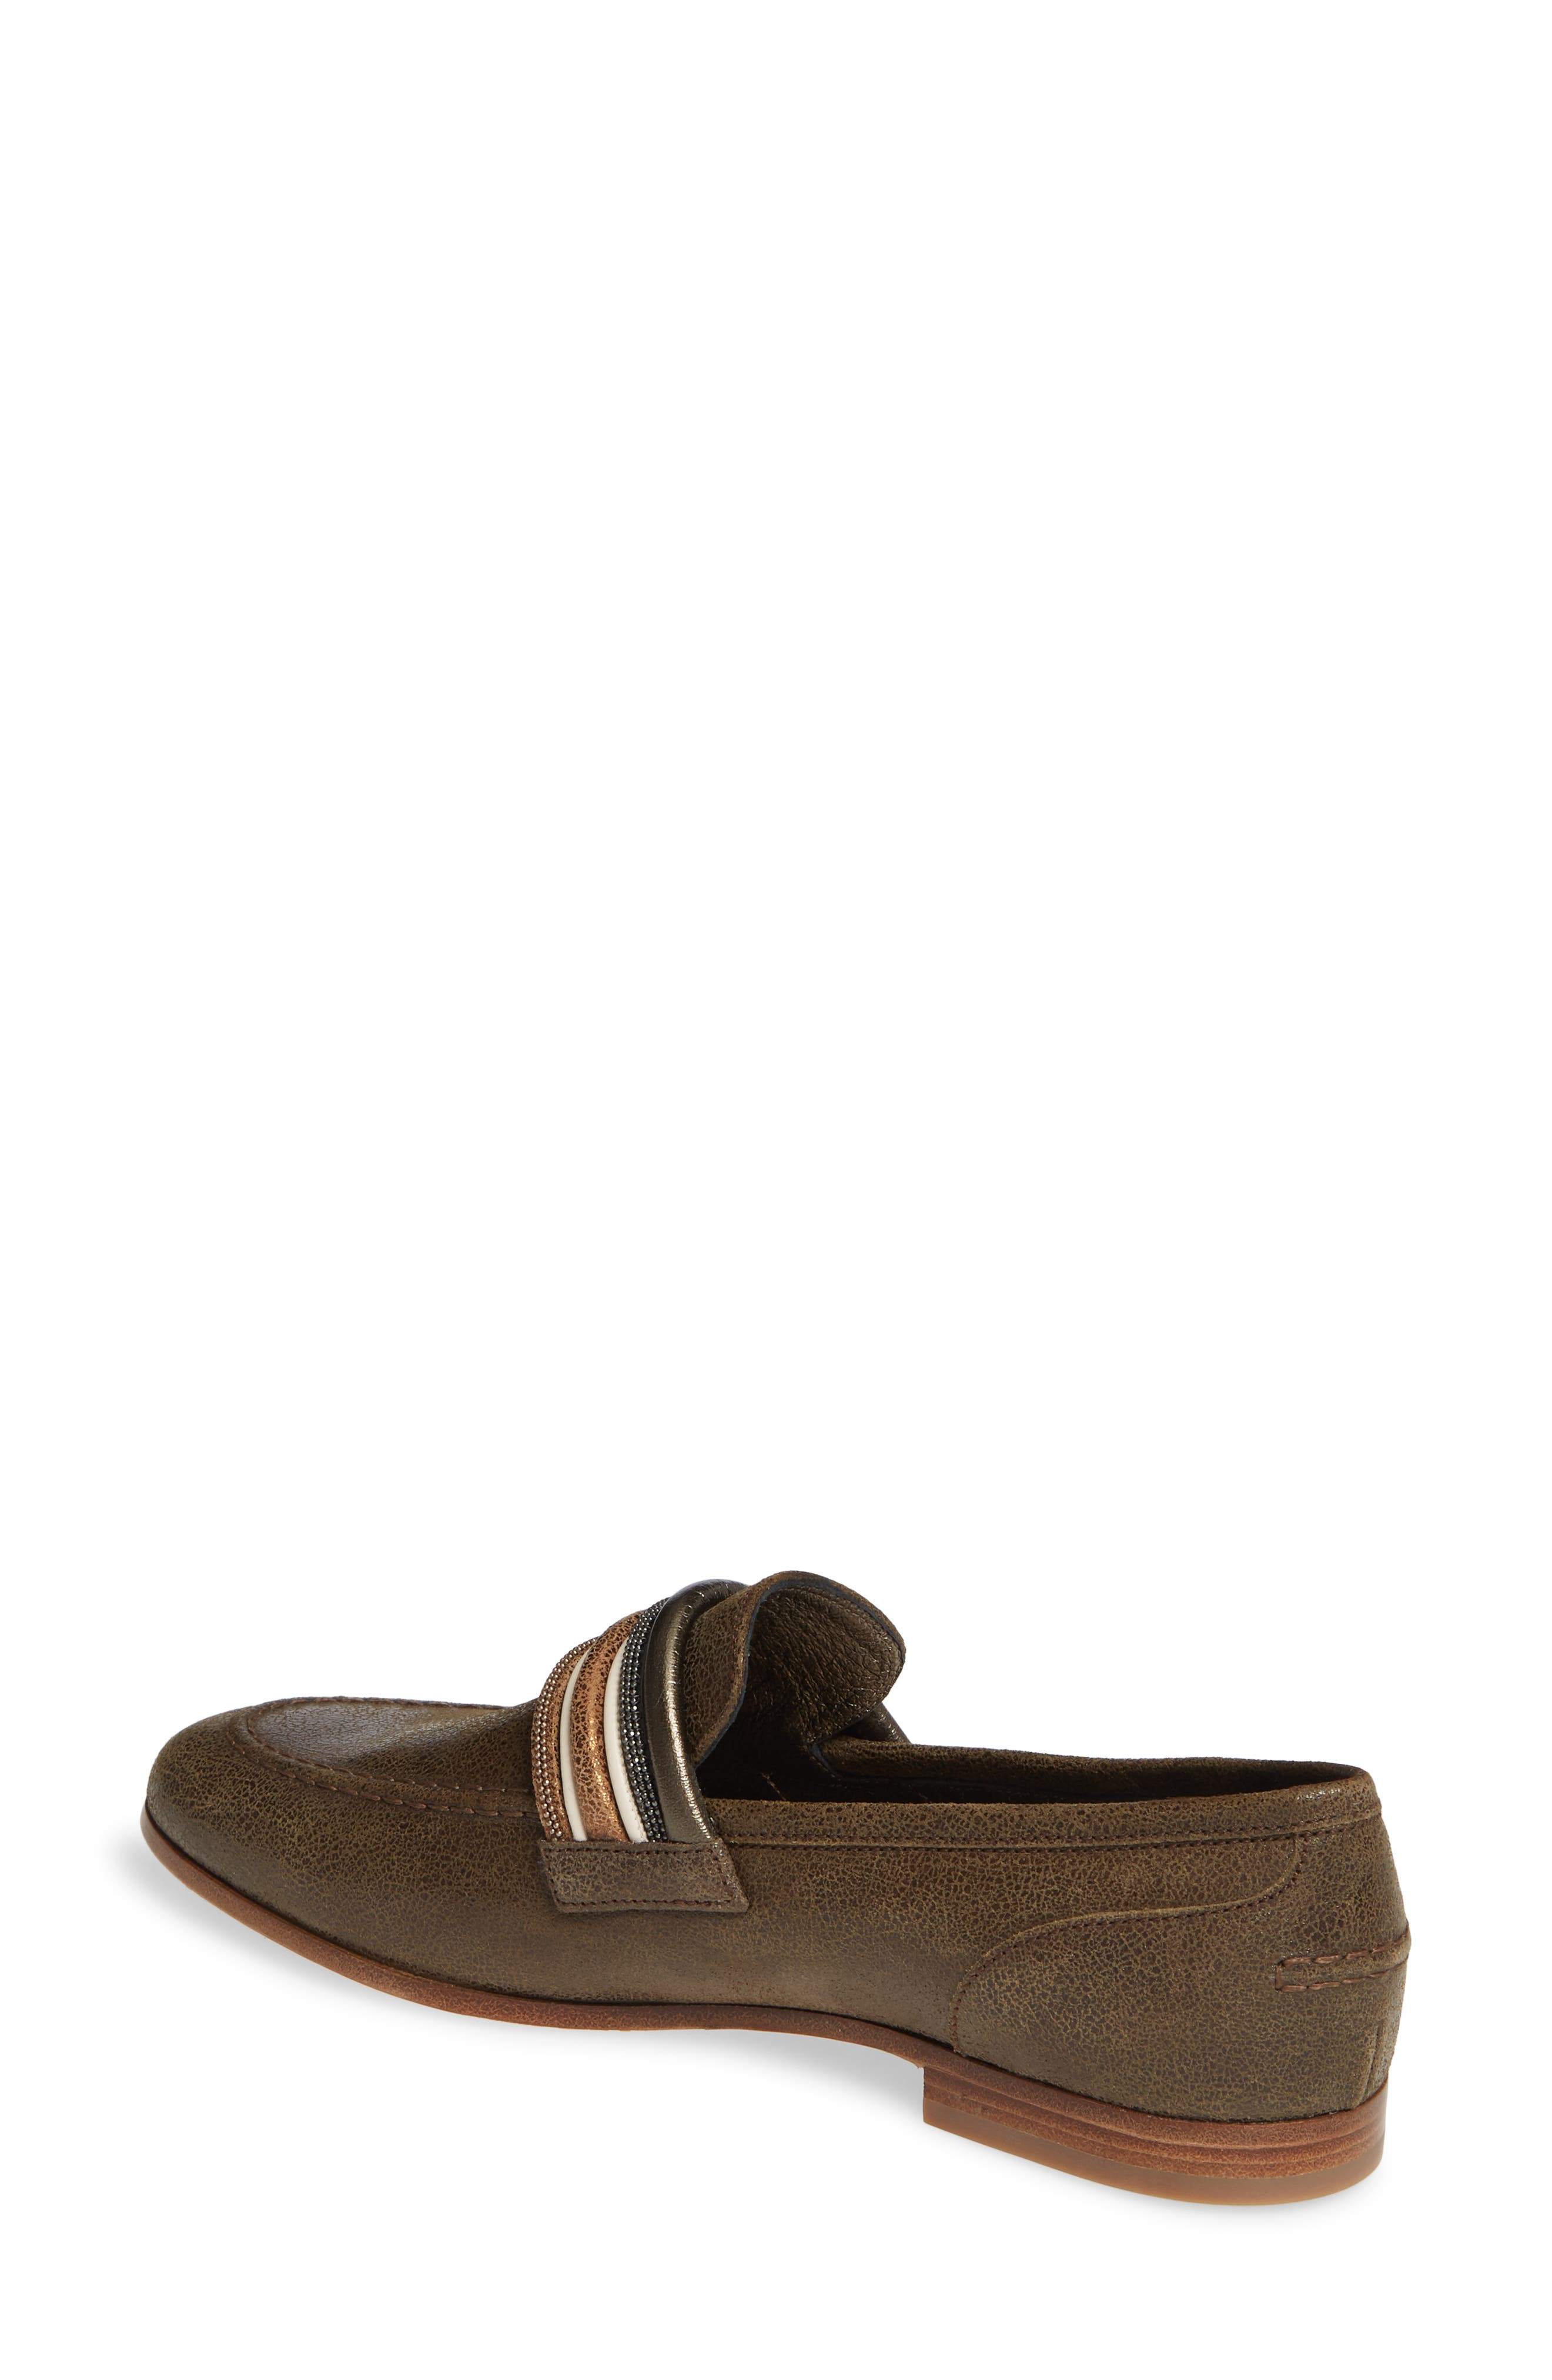 Tubular Loafer,                             Alternate thumbnail 2, color,                             MUD BROWN